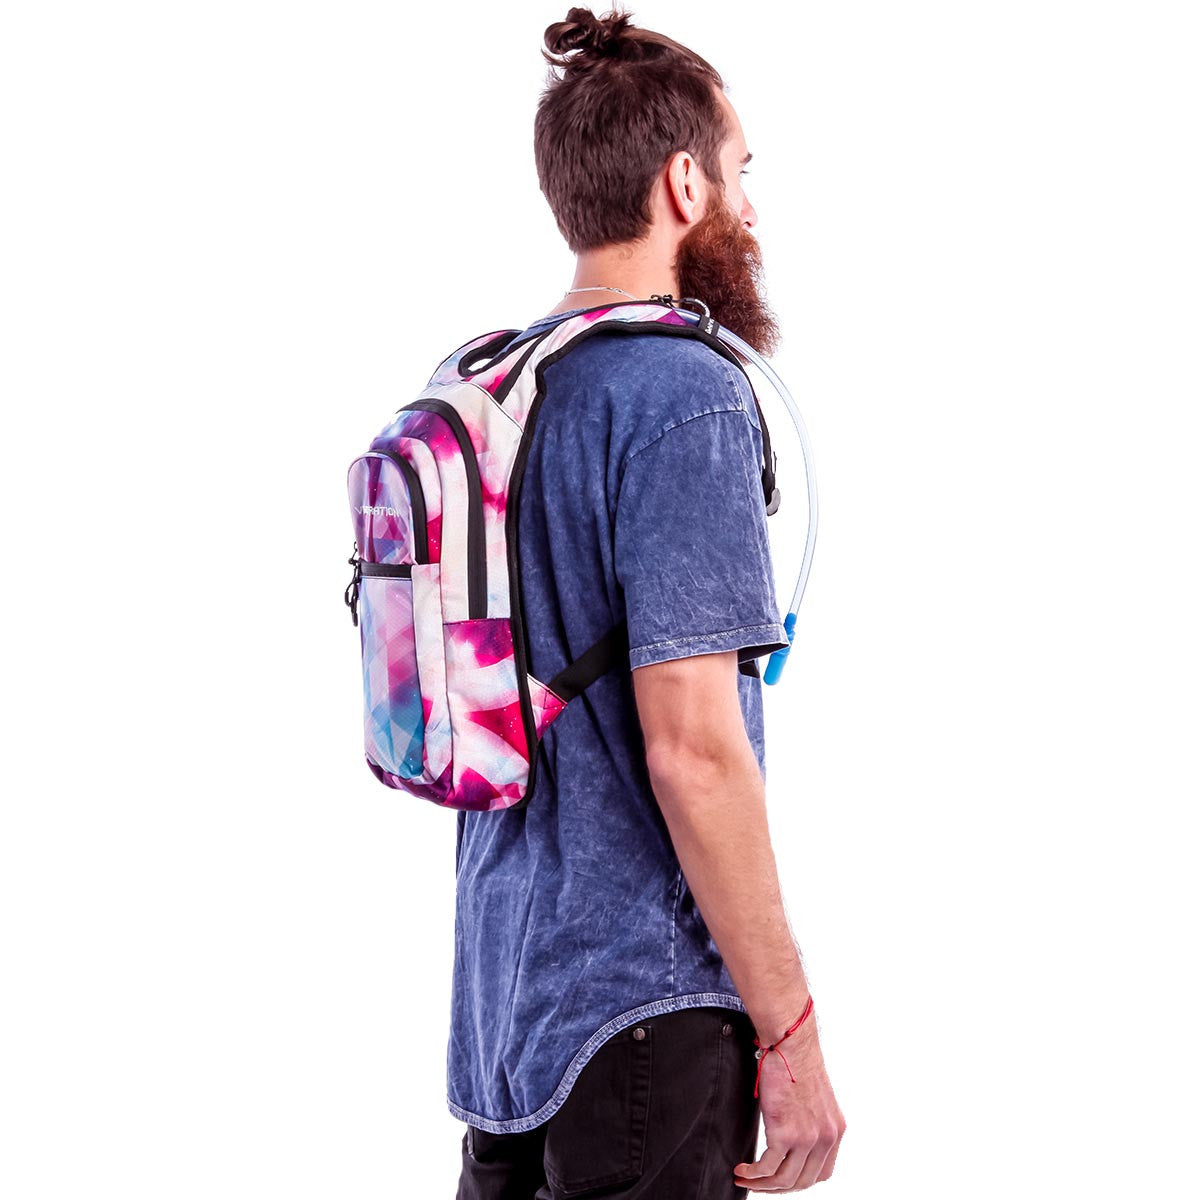 Male wearing Galaxy VIP hydration pack